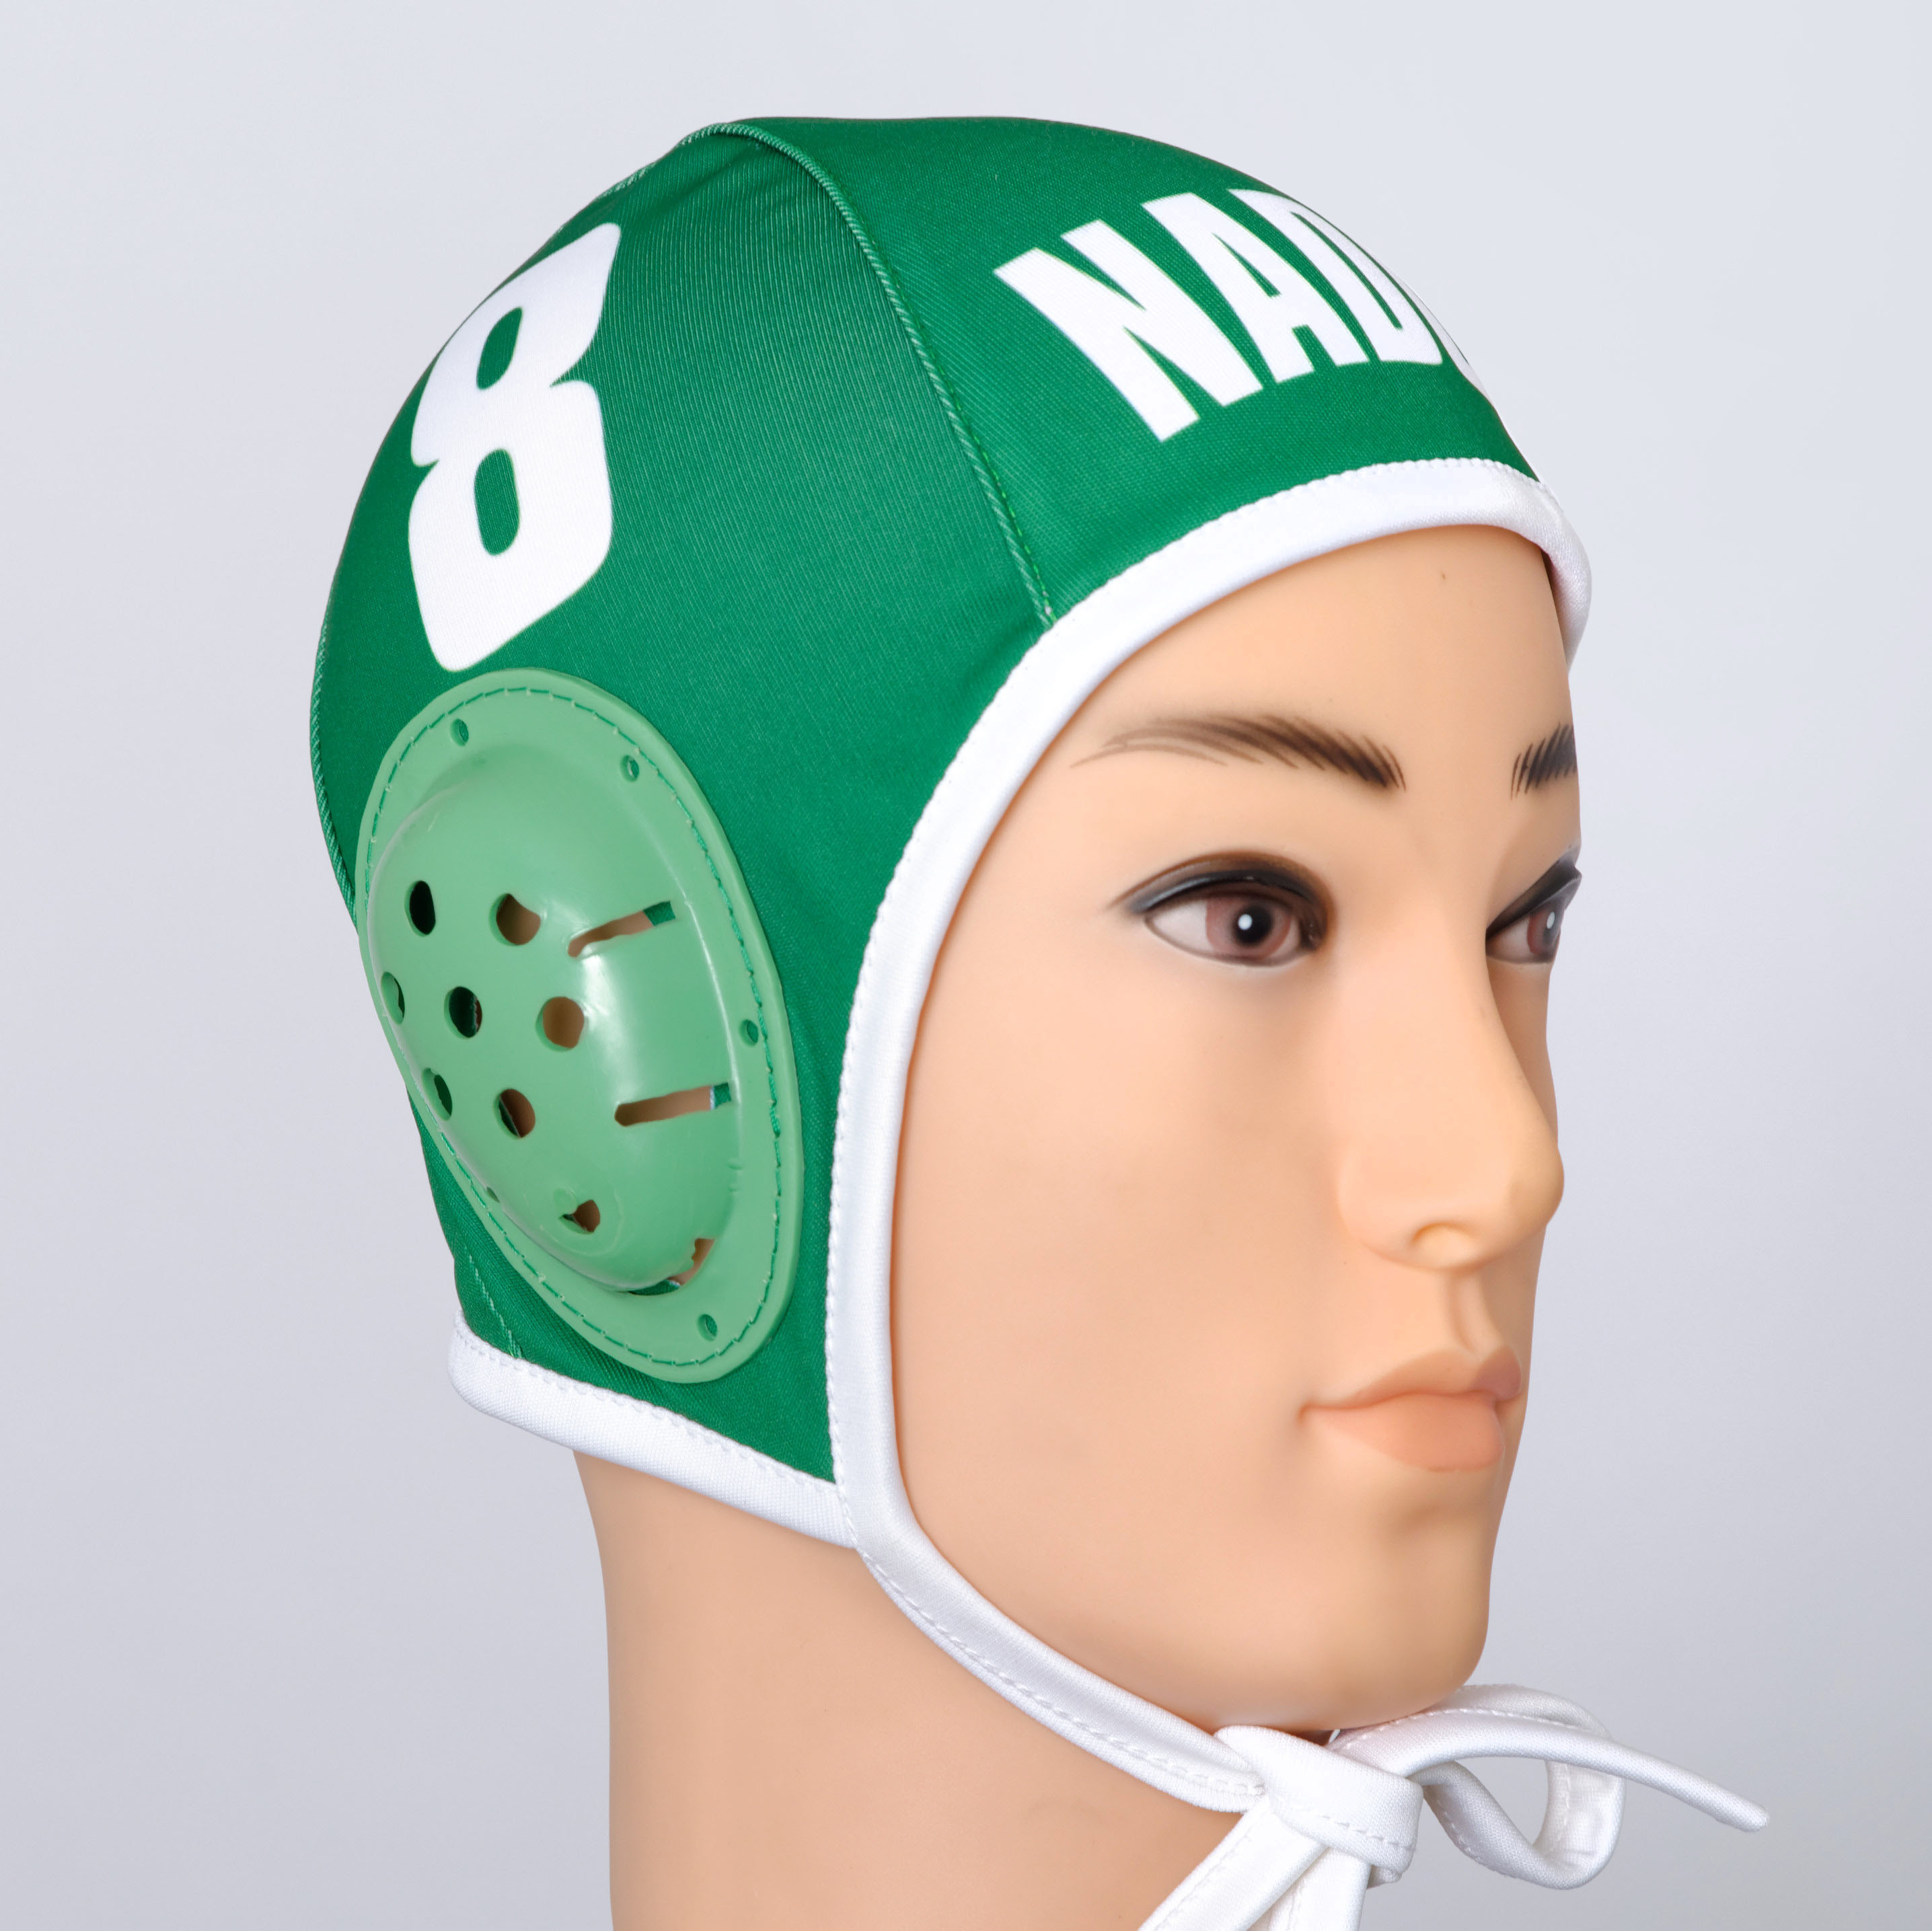 Green custom water polo cap.